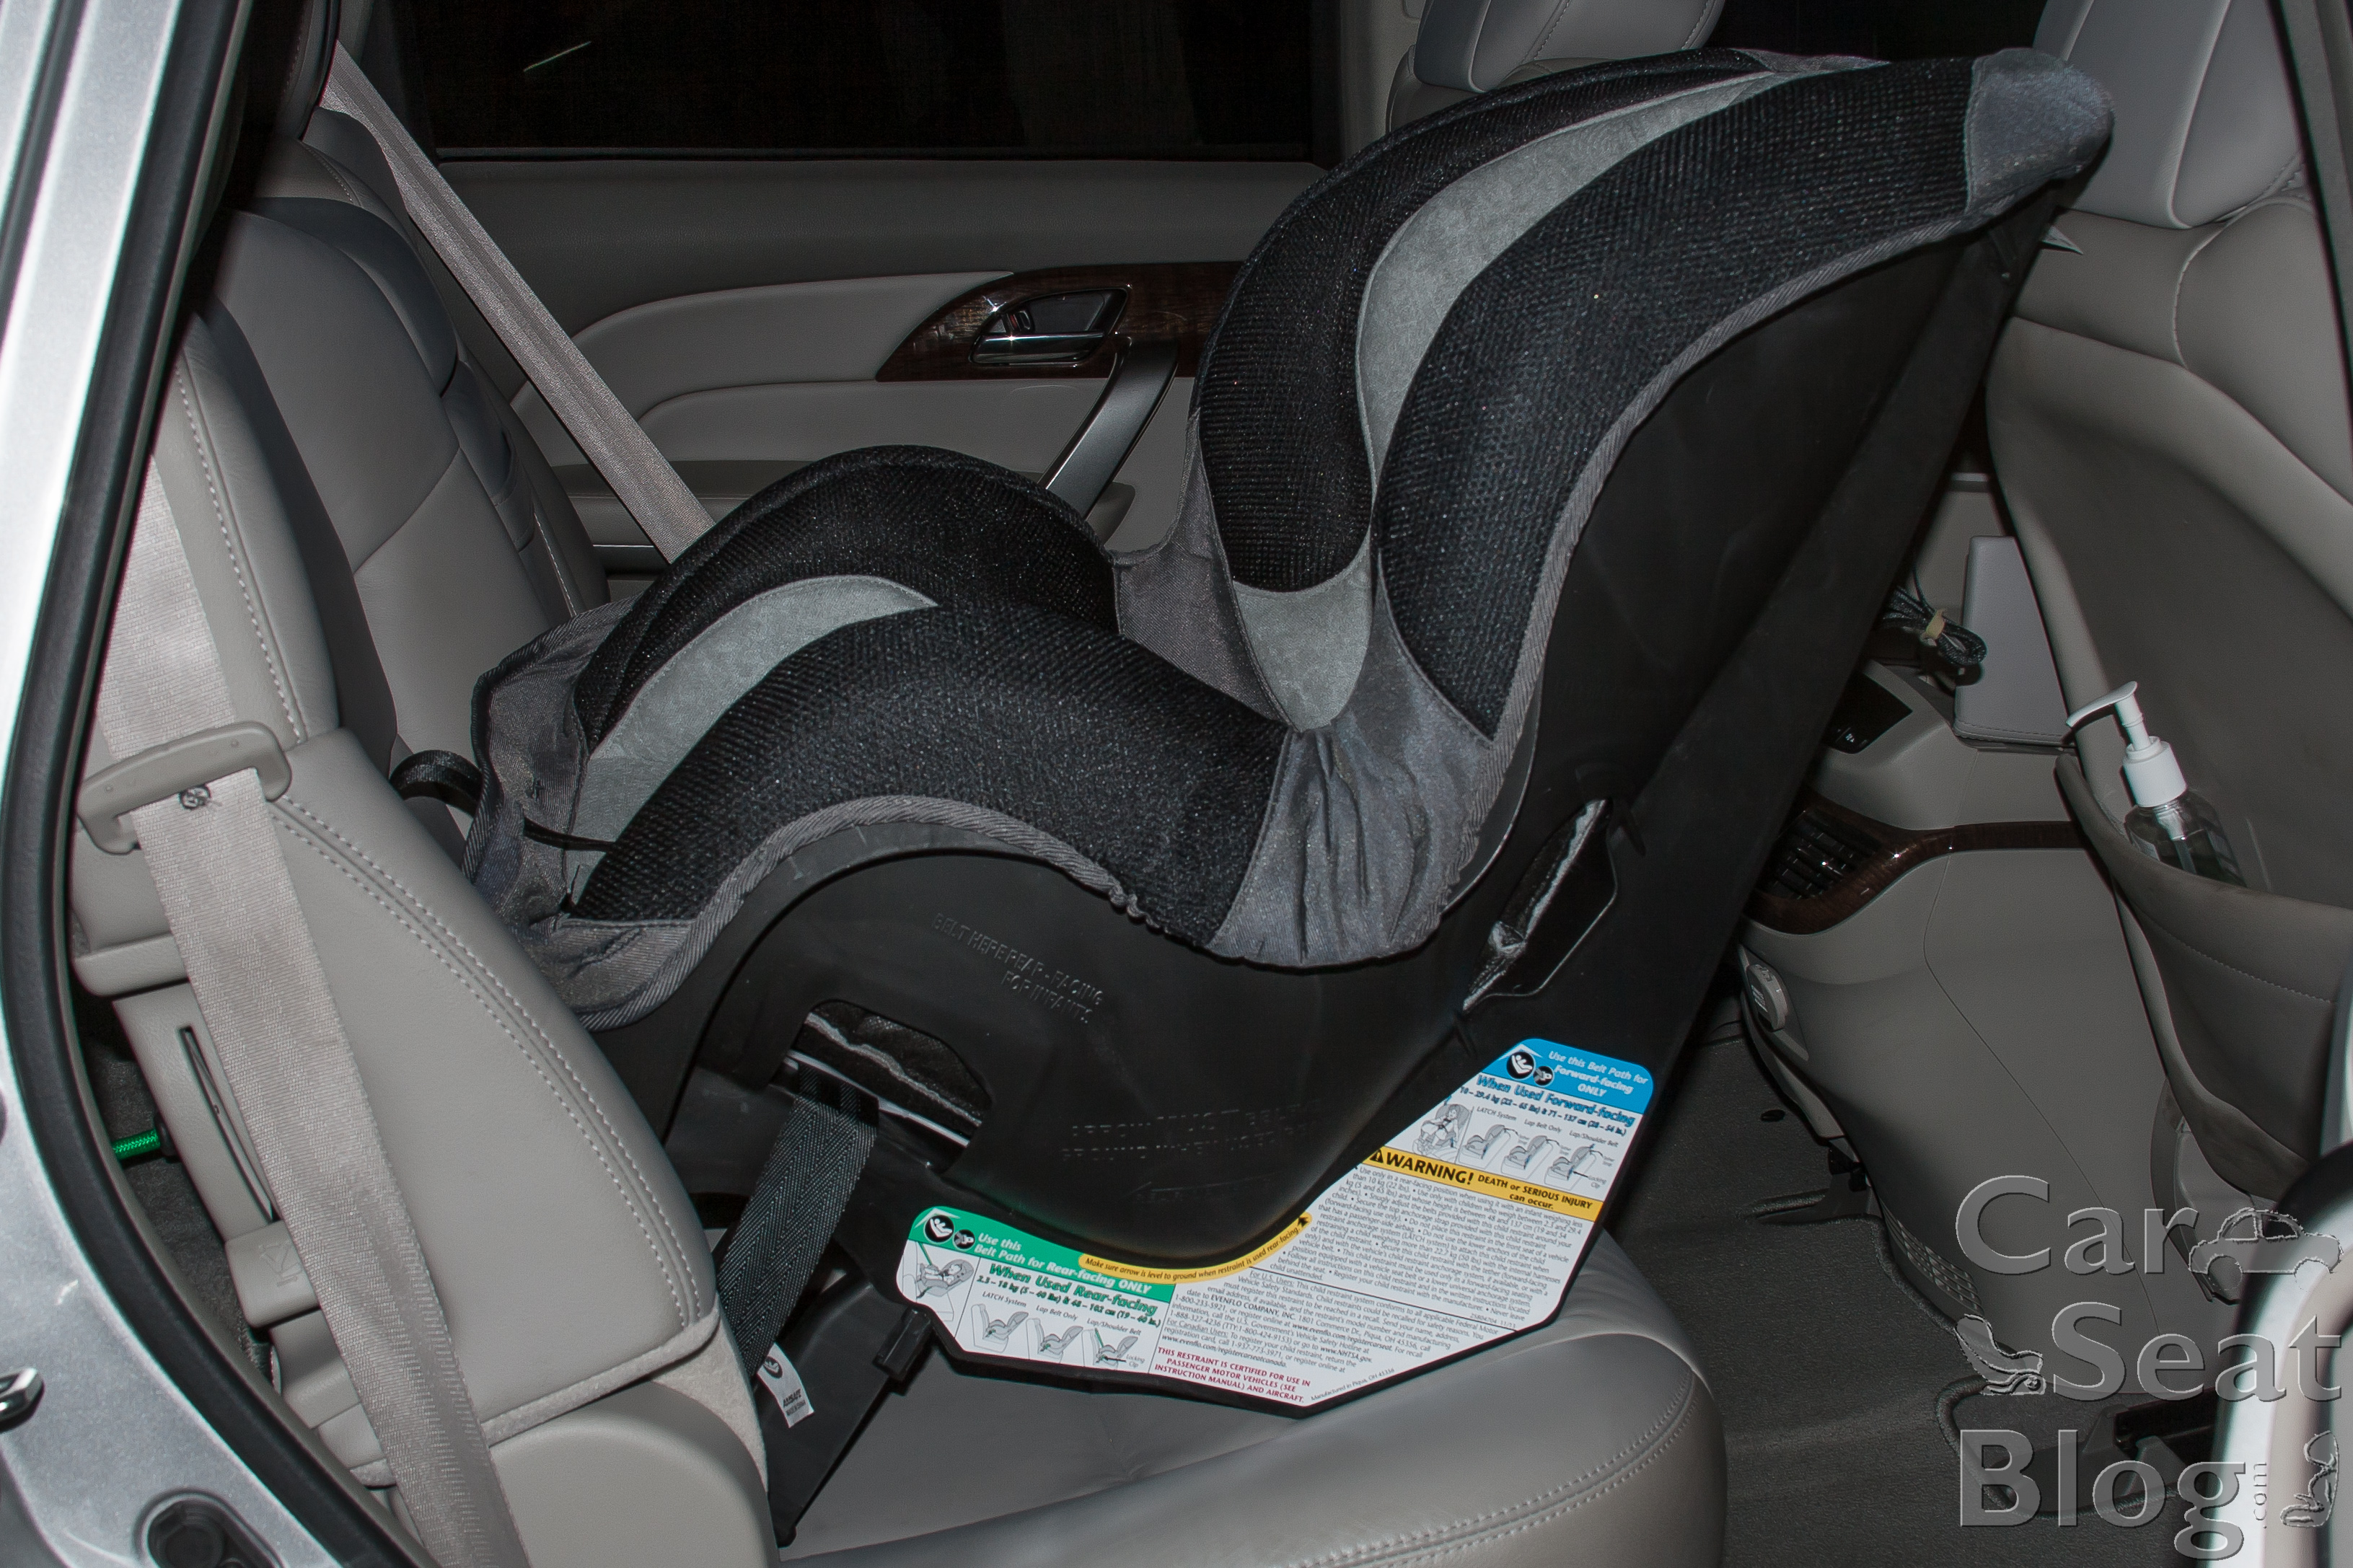 CarseatBlog: The Most Trusted Source for